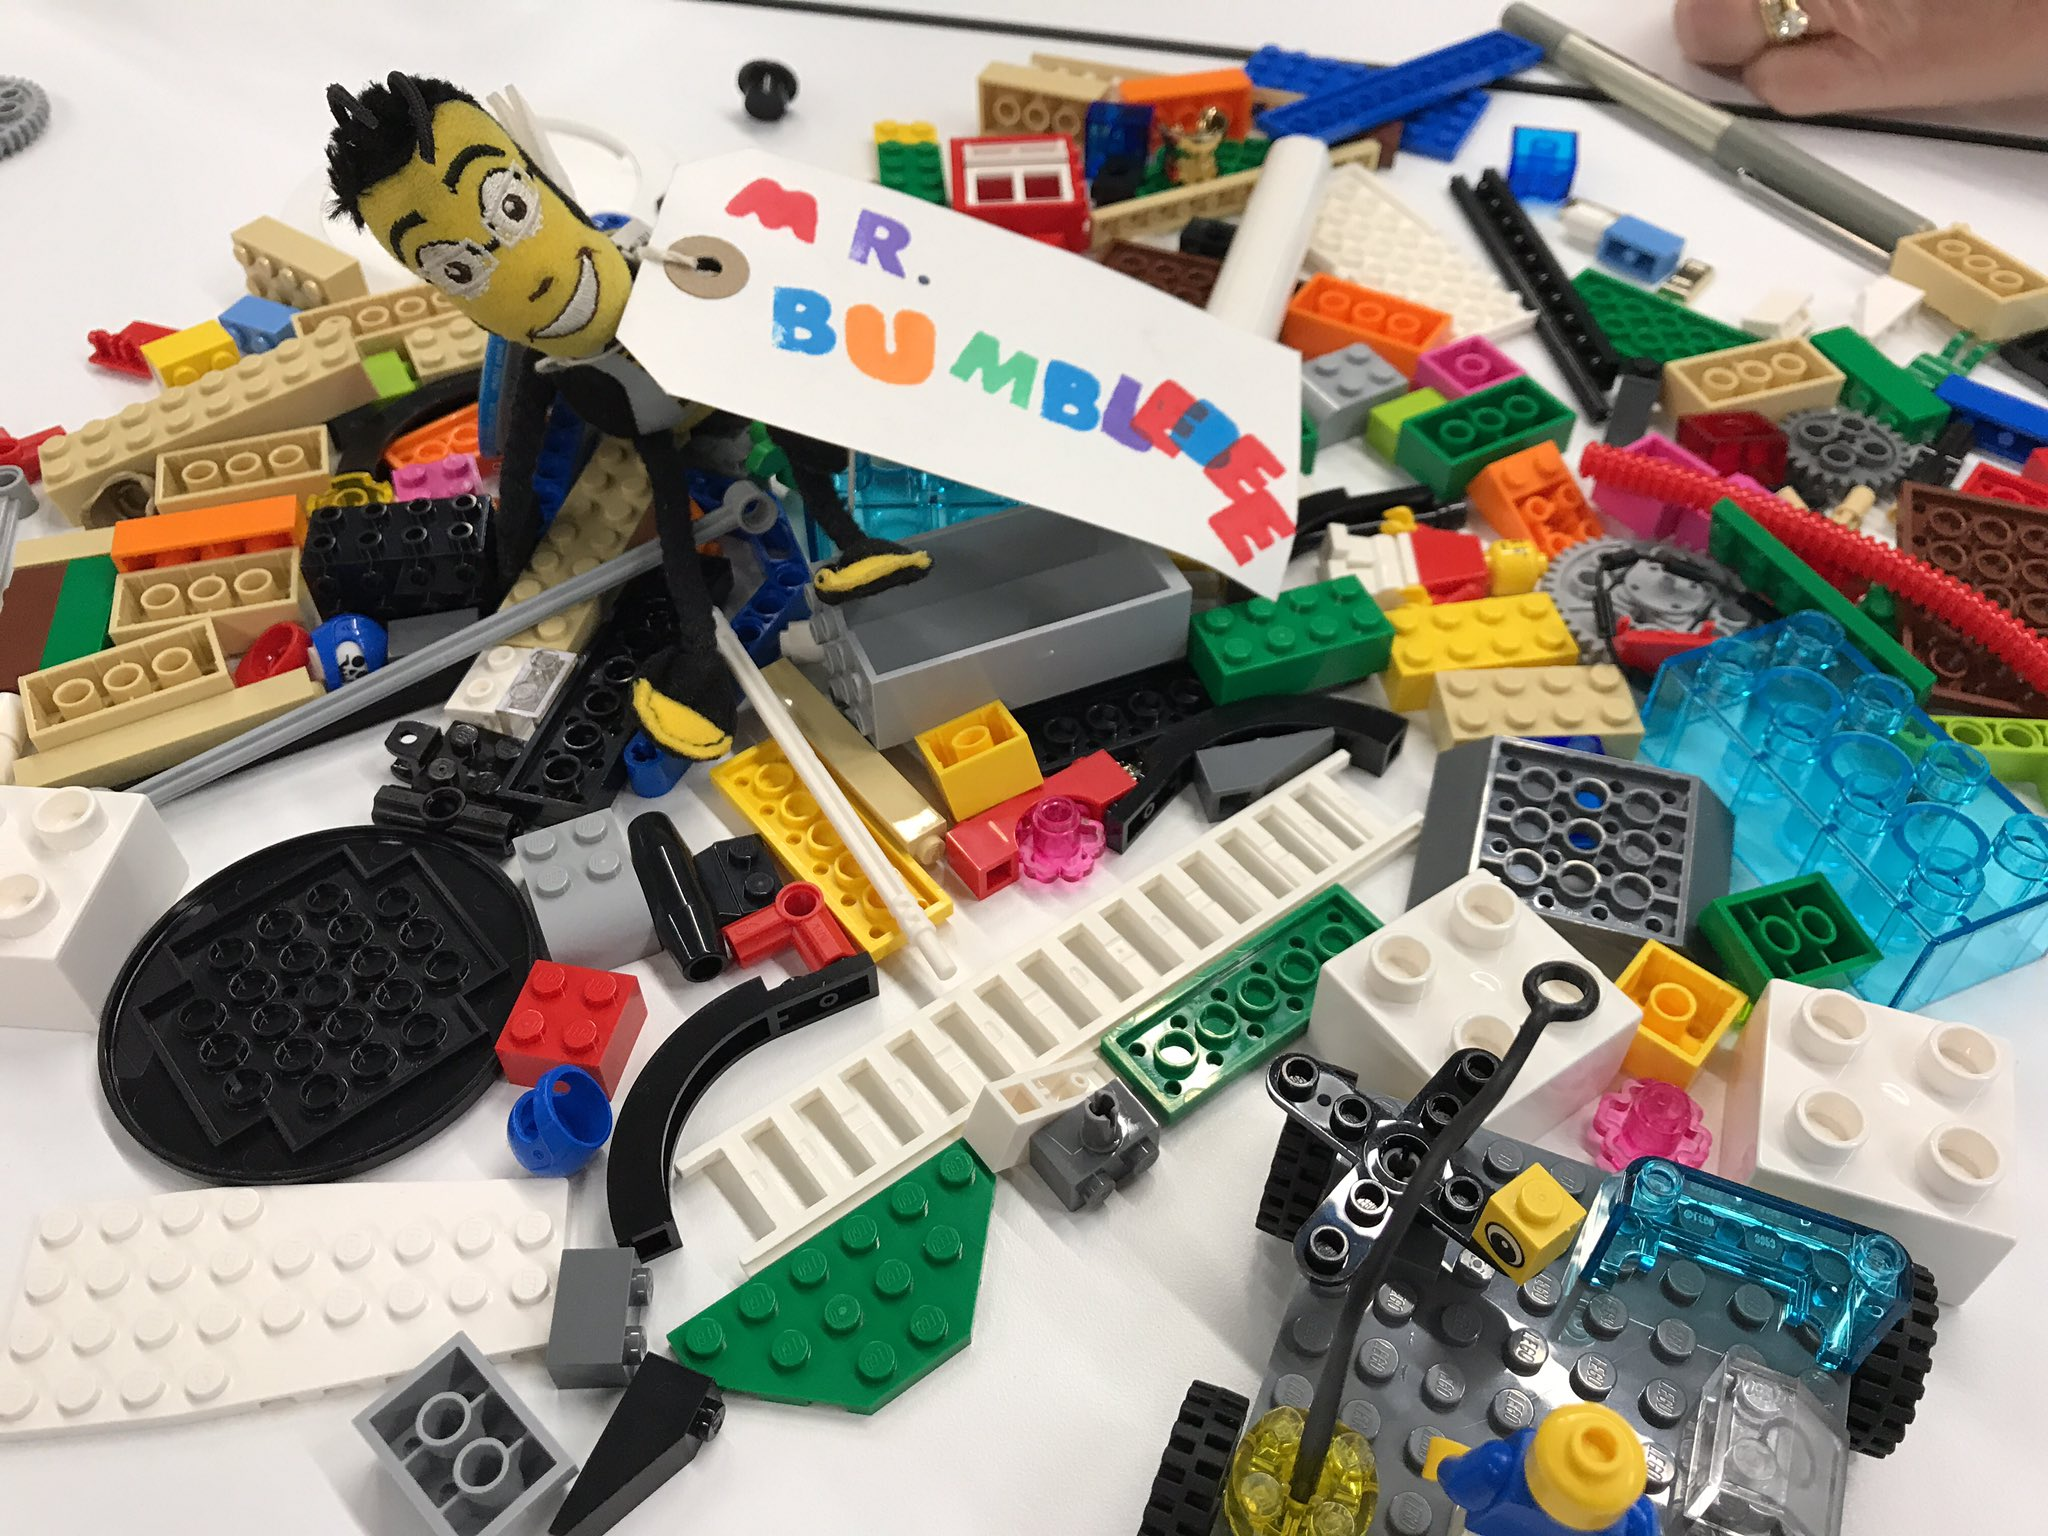 Lovely morning at the Allison, Alex, Leigh and Roseline LSP workshop building a team in 90 min #playlearn17 @MrBumblebeeToy @masfrancesc https://t.co/Ewmg4UgQkK